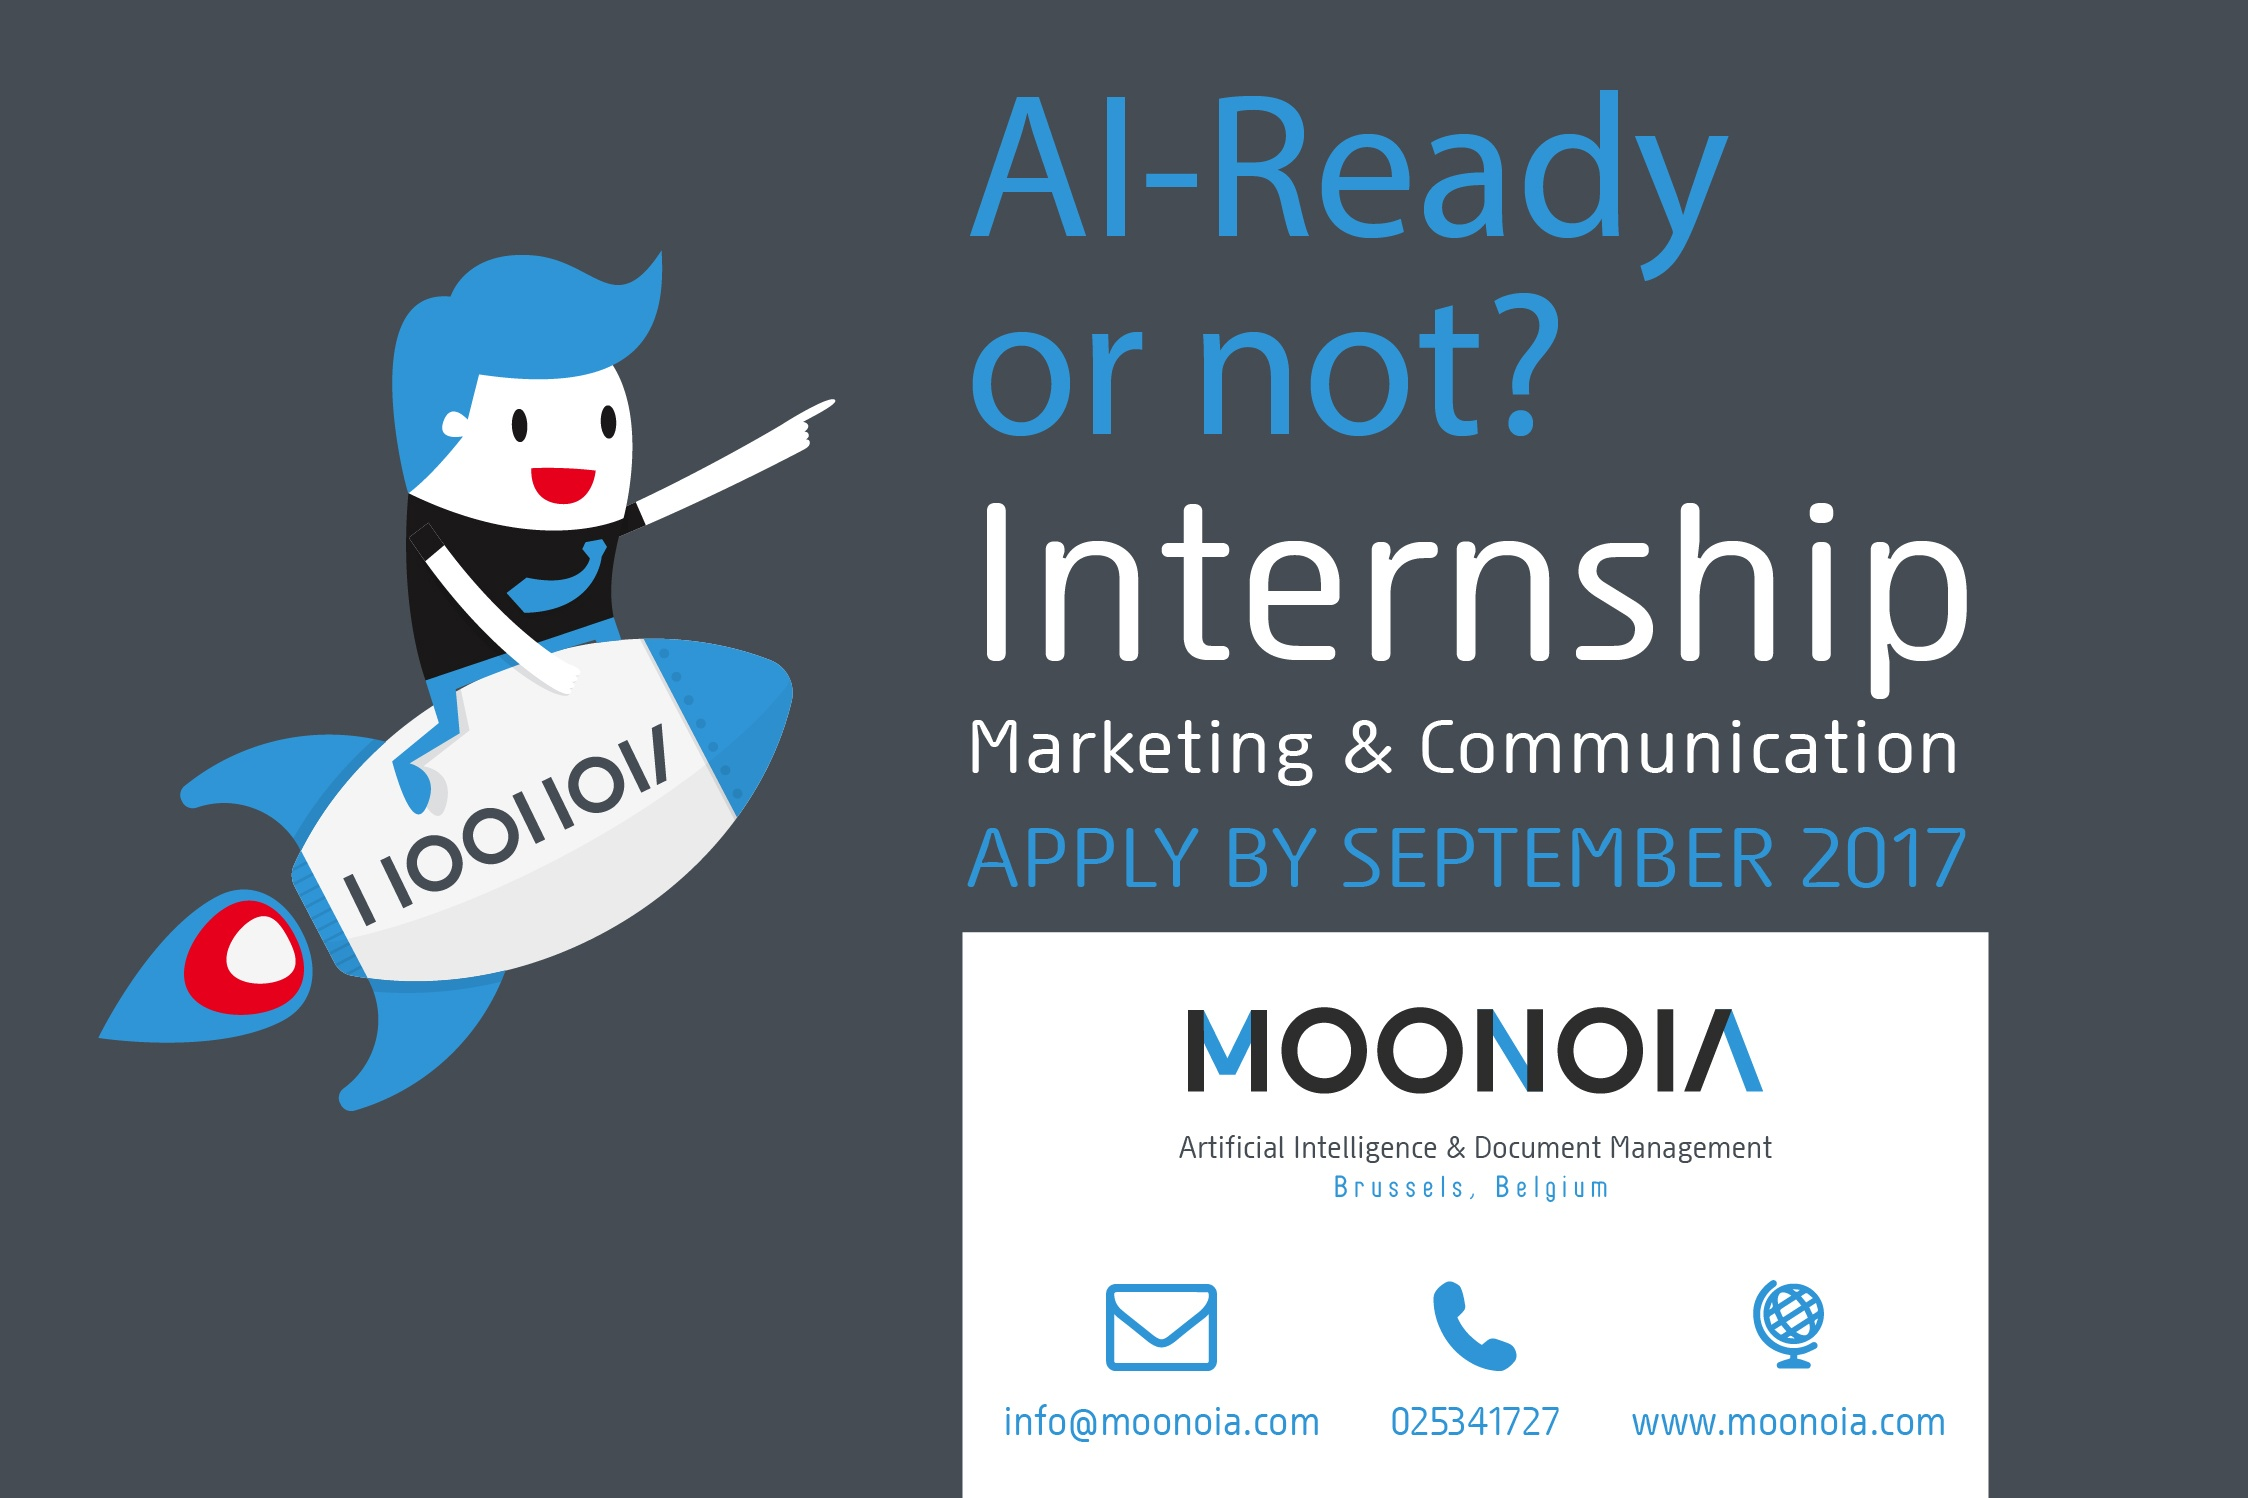 We are looking for a Marketing & Communication intern!